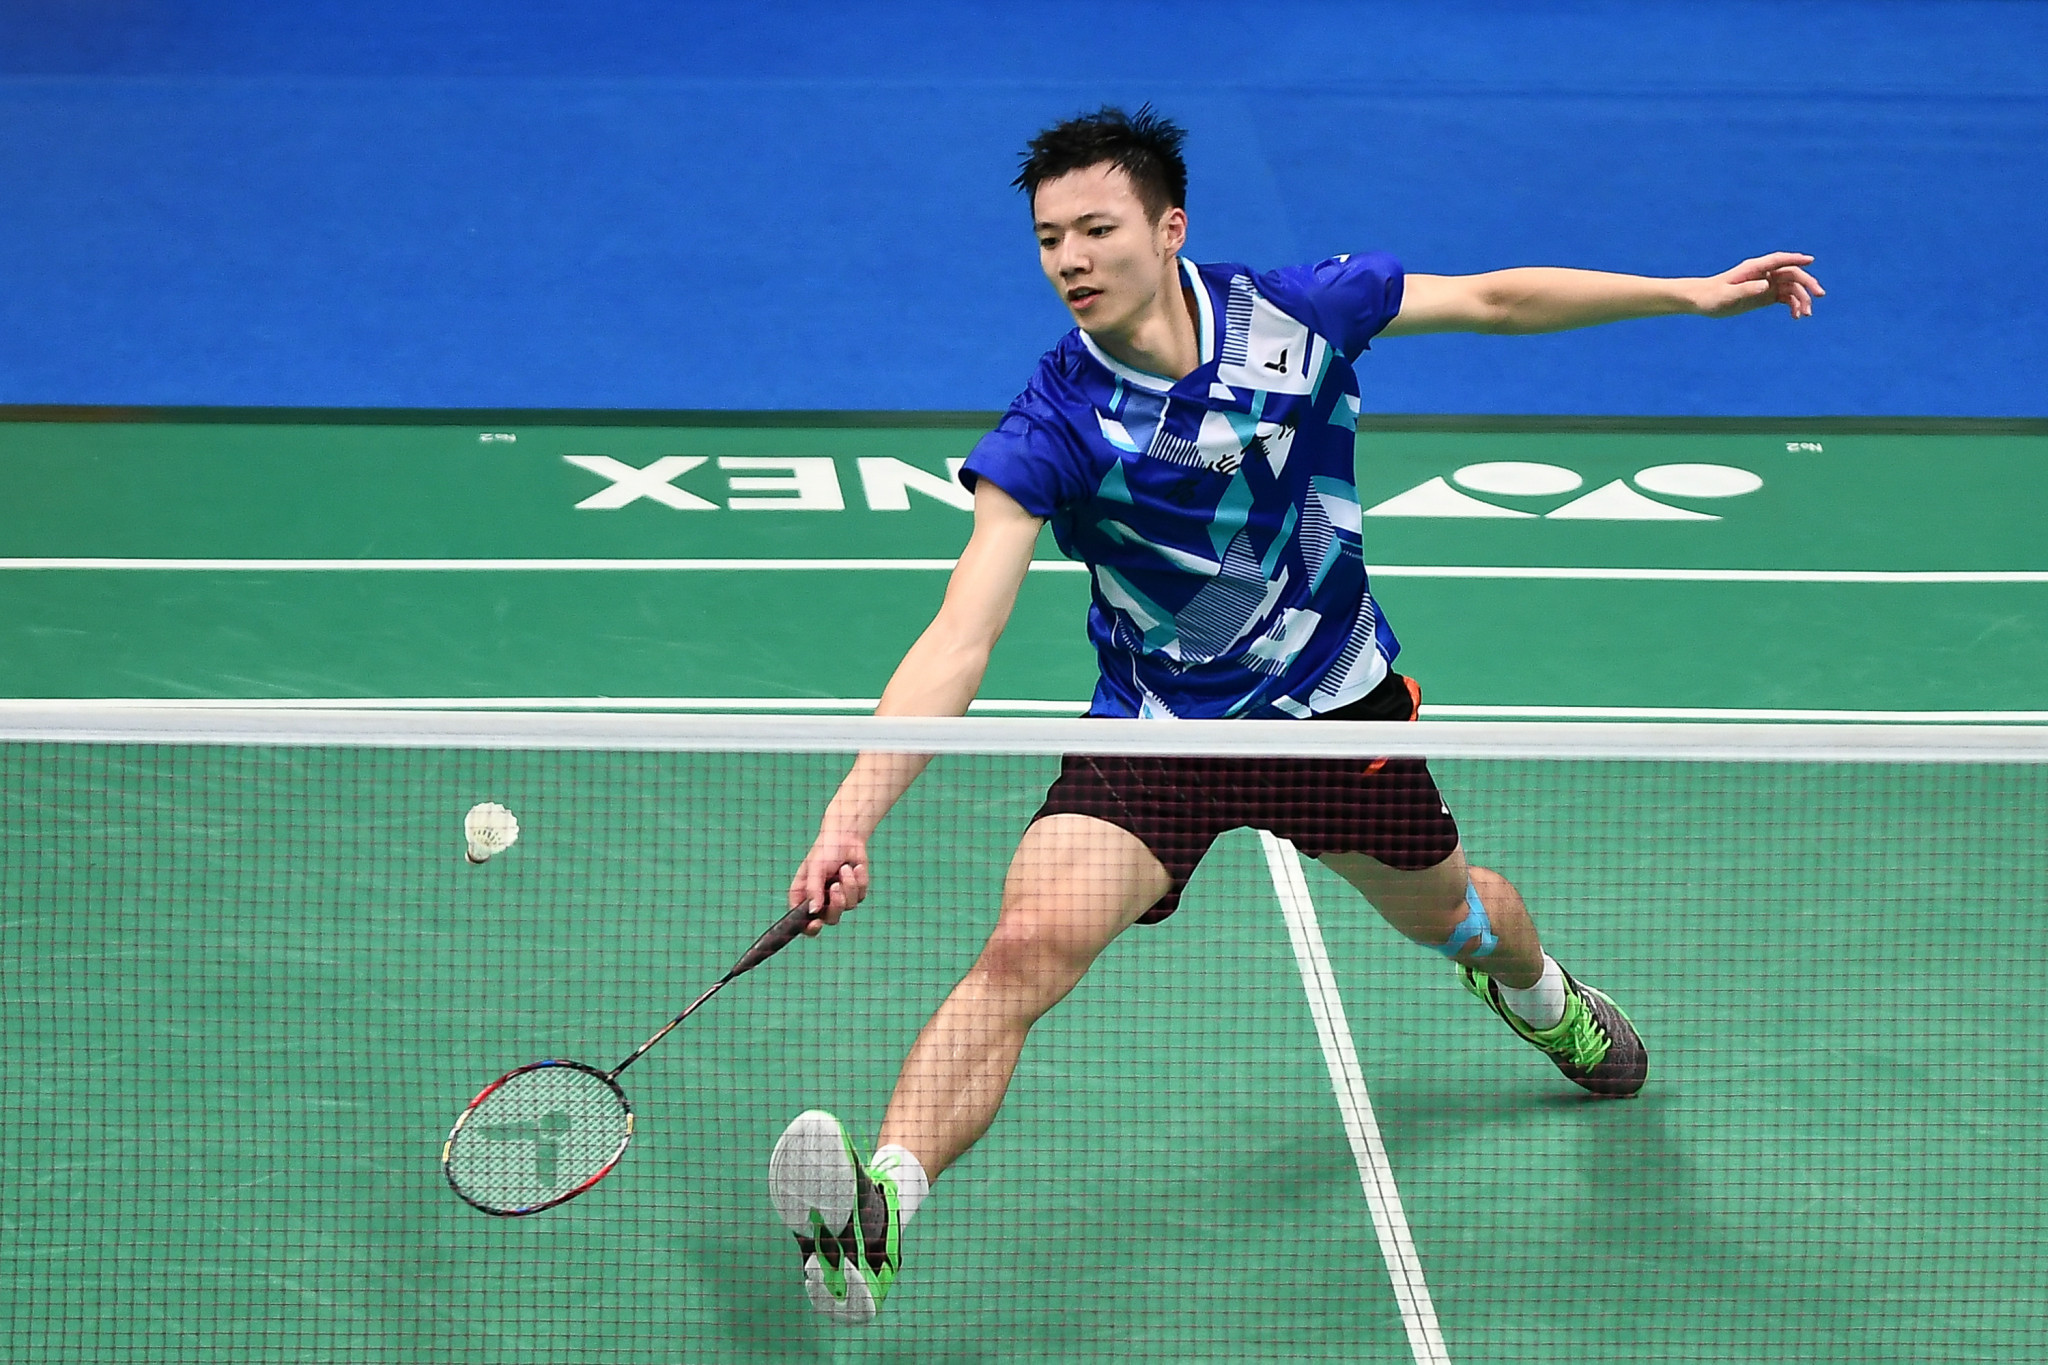 Top seed Wang through to last eight at BWF Dutch Open